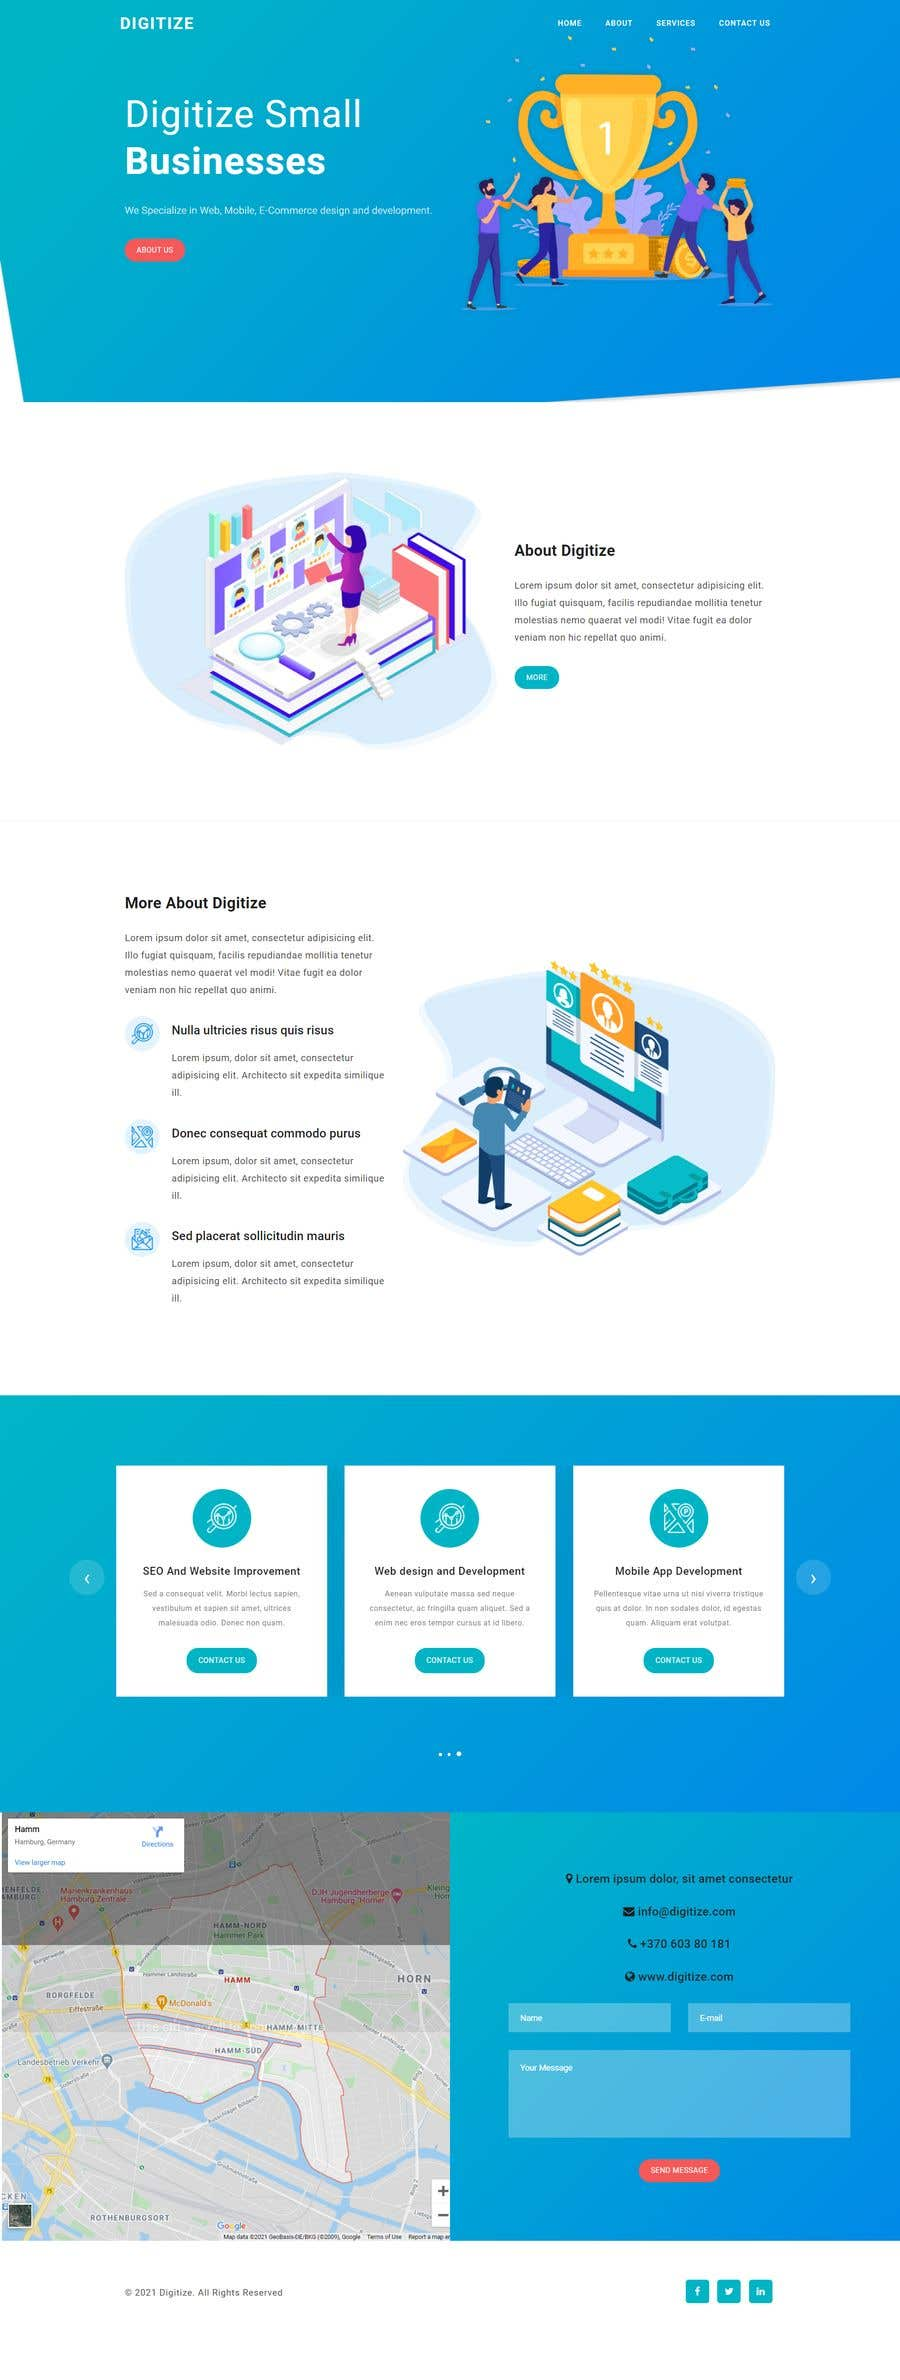 Bài tham dự cuộc thi #                                        50                                      cho                                         I need a Landing Page Website for Small Business Stores